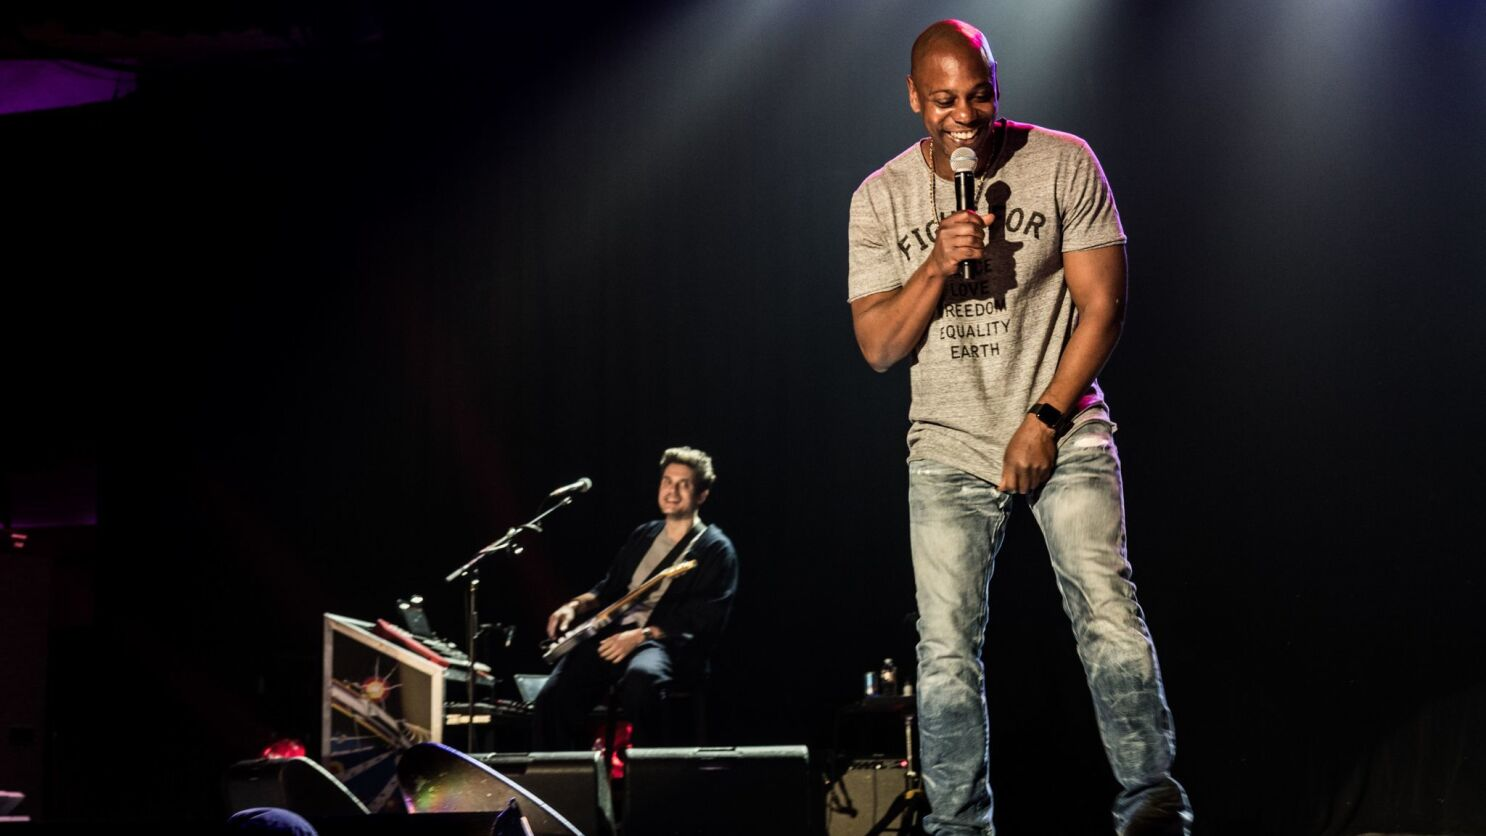 review here s what happened at dave chappelle and john mayer s secretive no phones concert los angeles times review here s what happened at dave